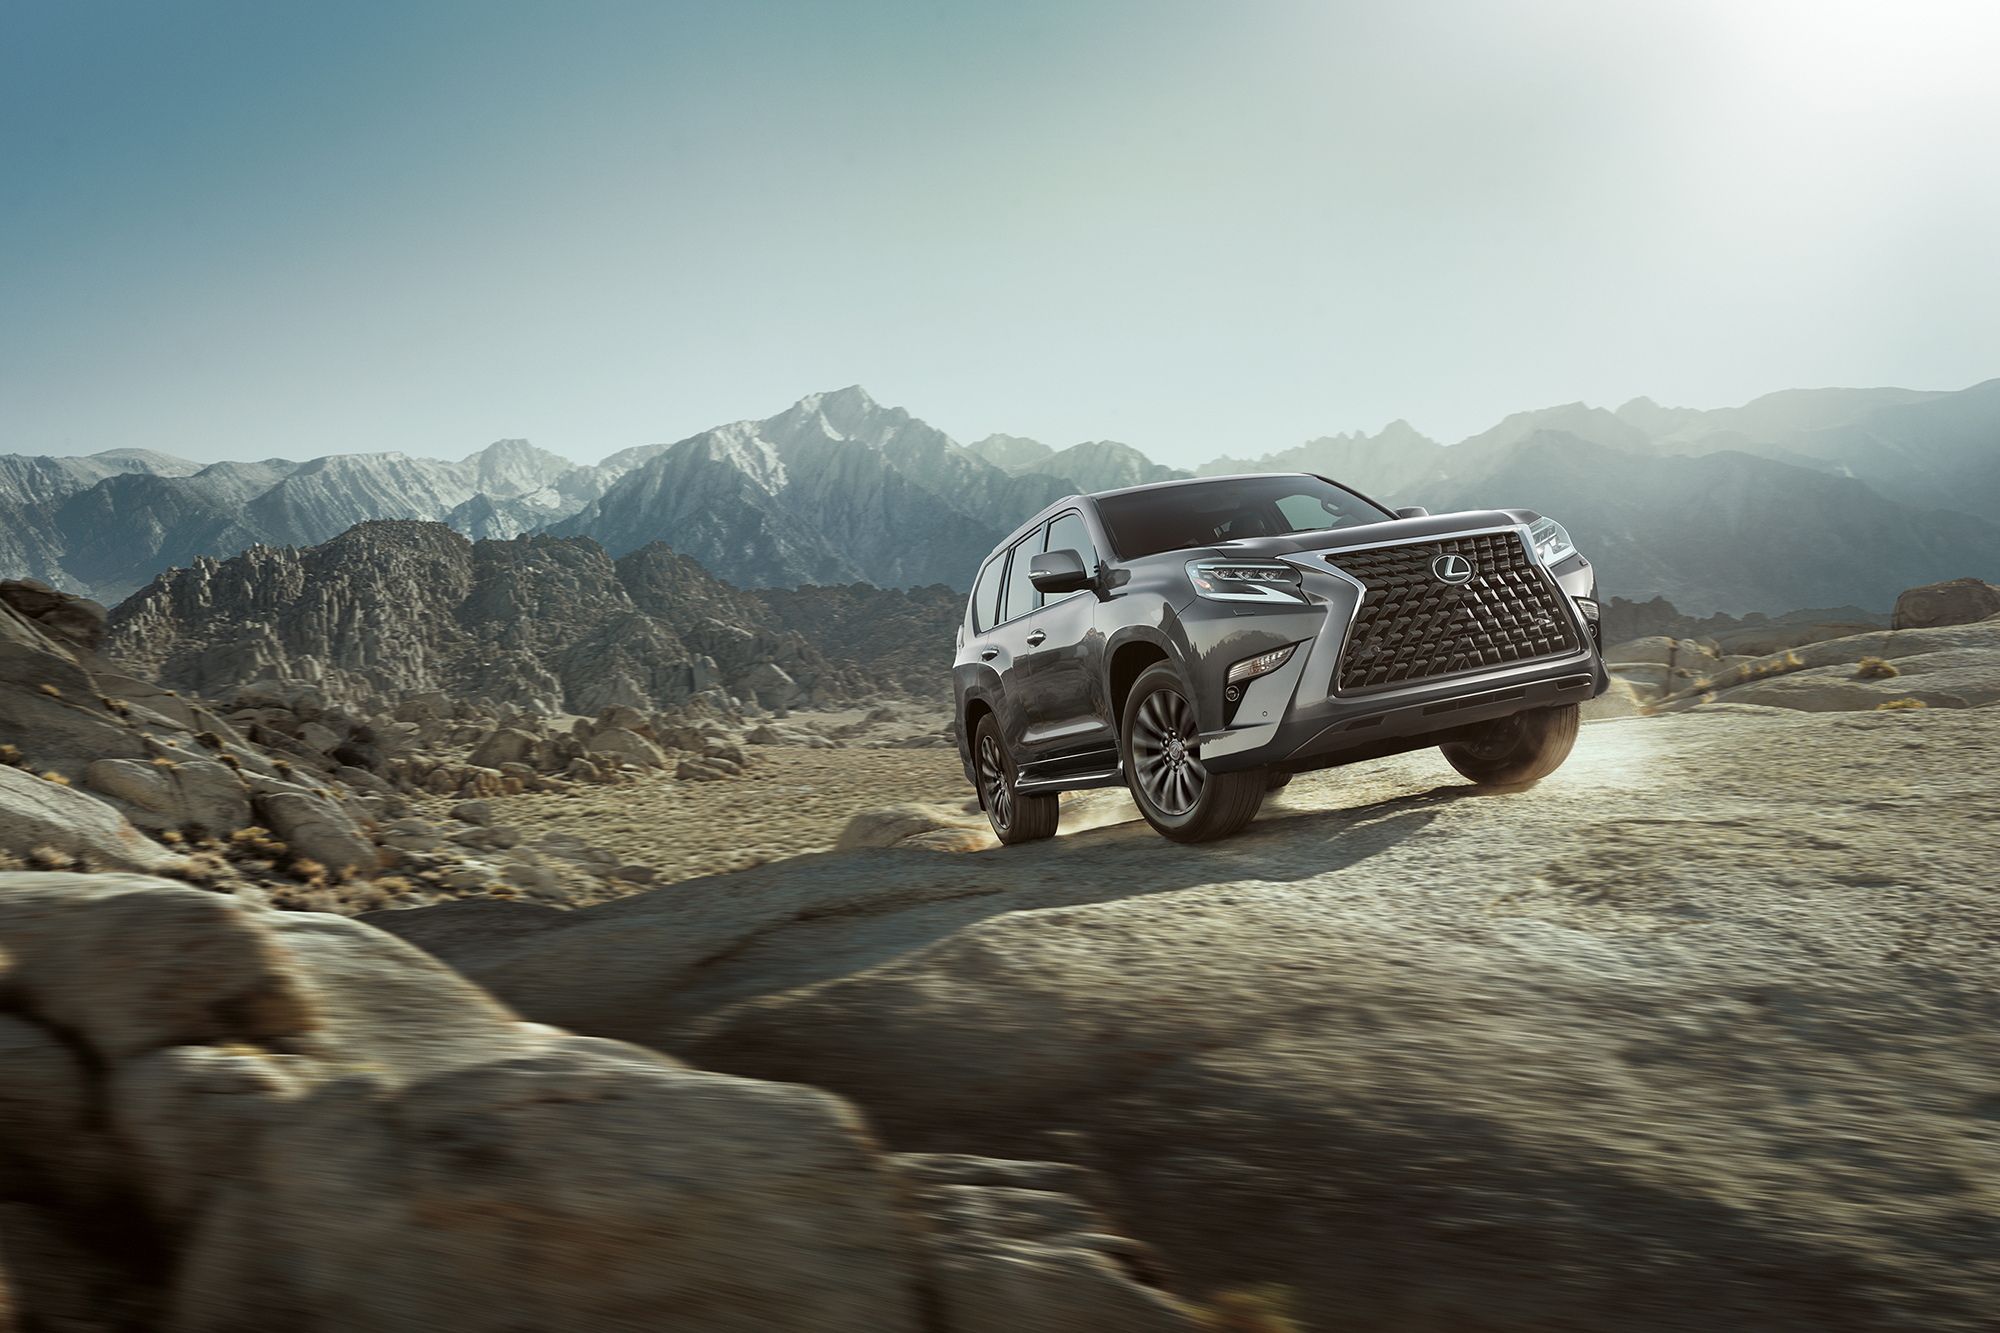 2020 Lexus GX 460 Remains Refreshingly Resistant to Change